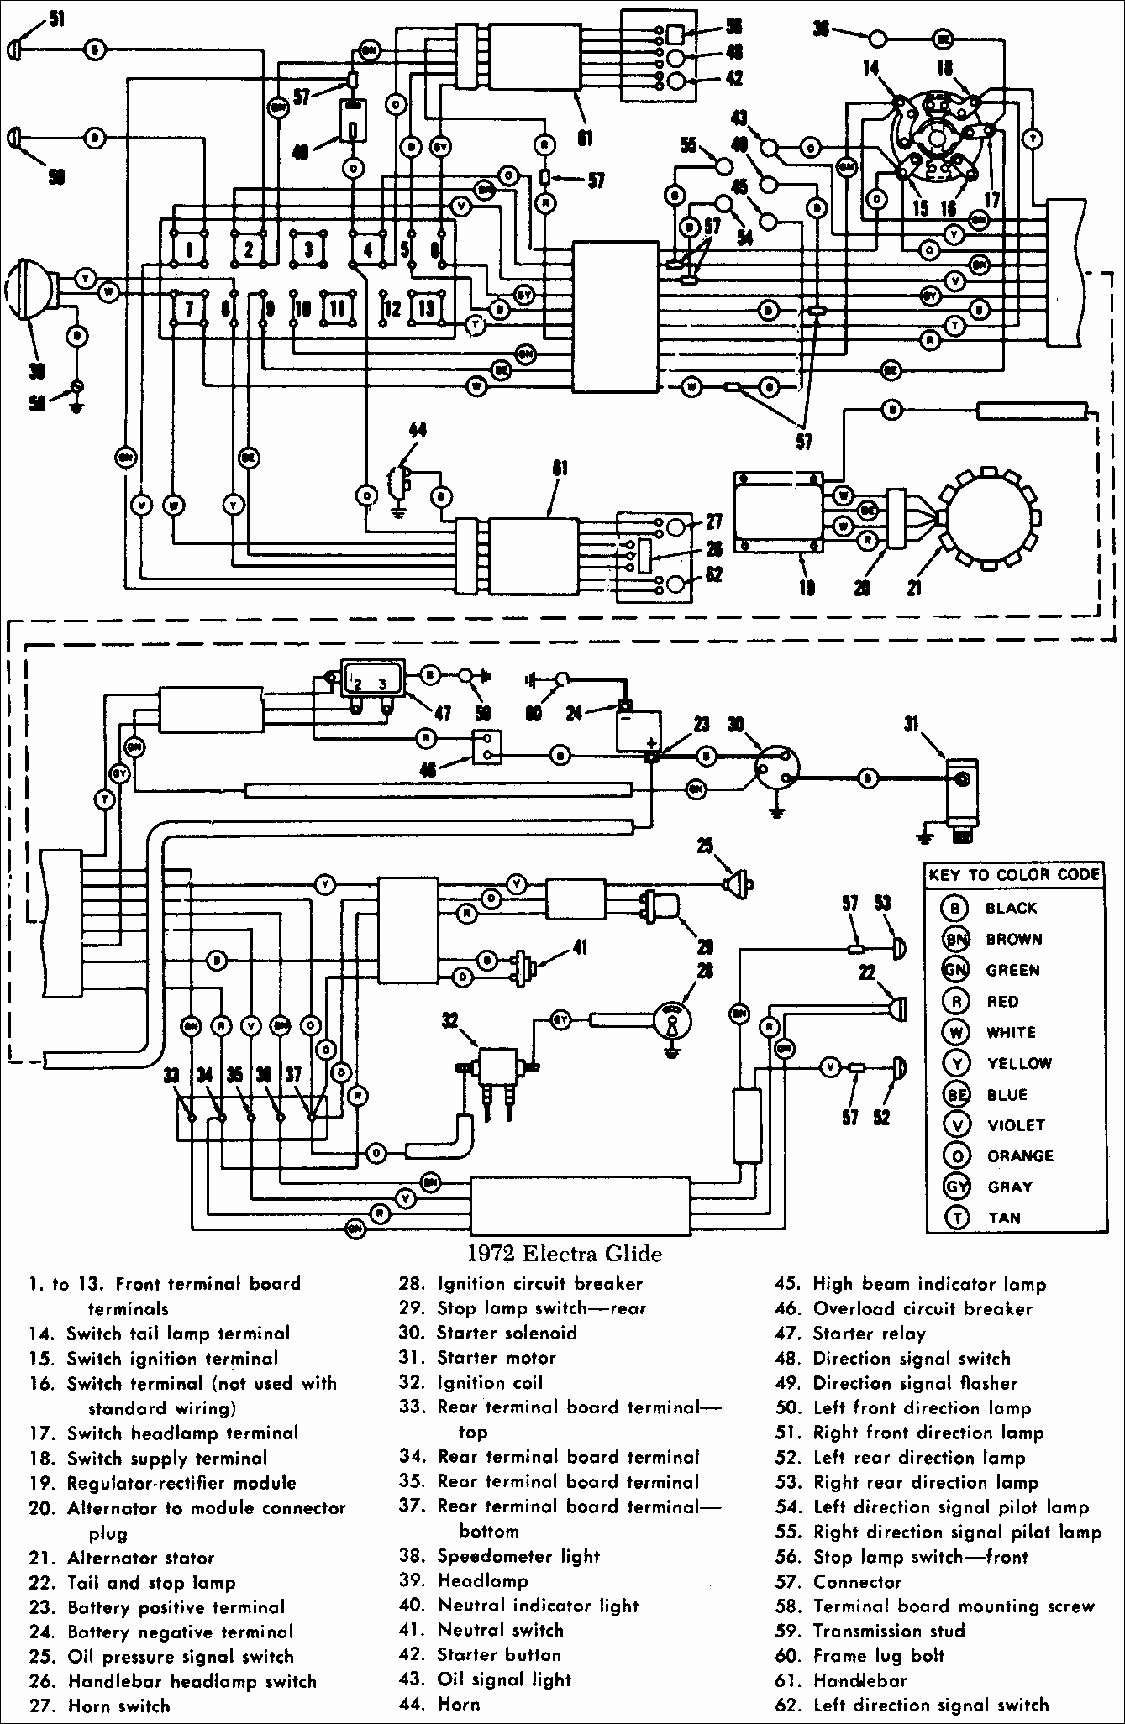 Diagram Kawasaki Klr Wiring Diagram Full Version Hd Quality Wiring Diagram Blogwiring2f Atuttasosta It